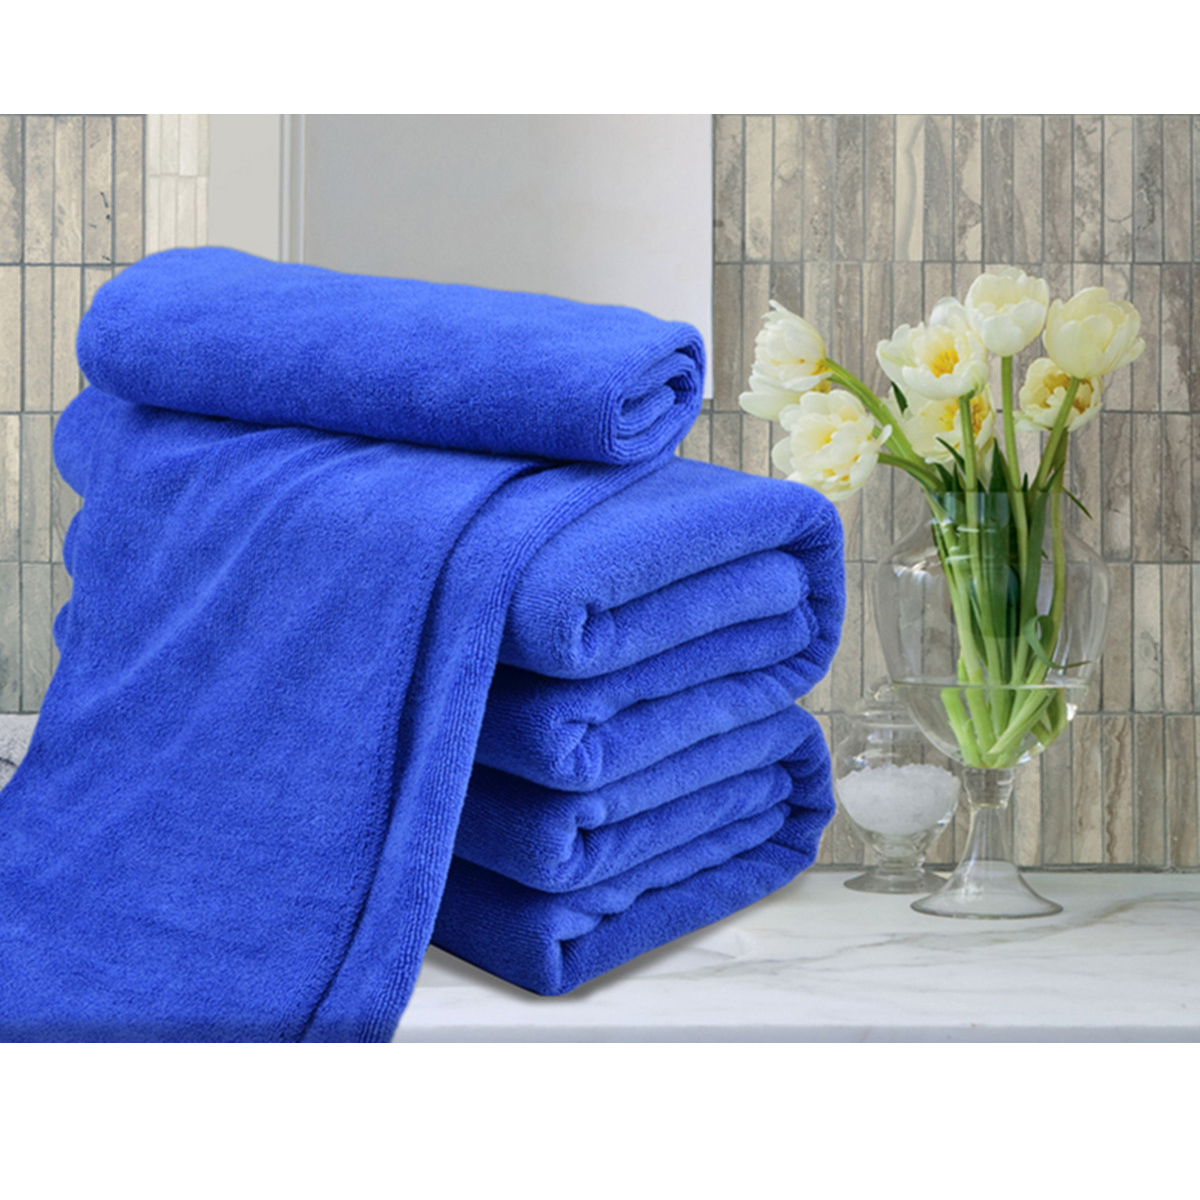 Microfiber Cloth Ebay Uk: Microfiber Super-absorbent Cleaning Drying Cloth TV Auto